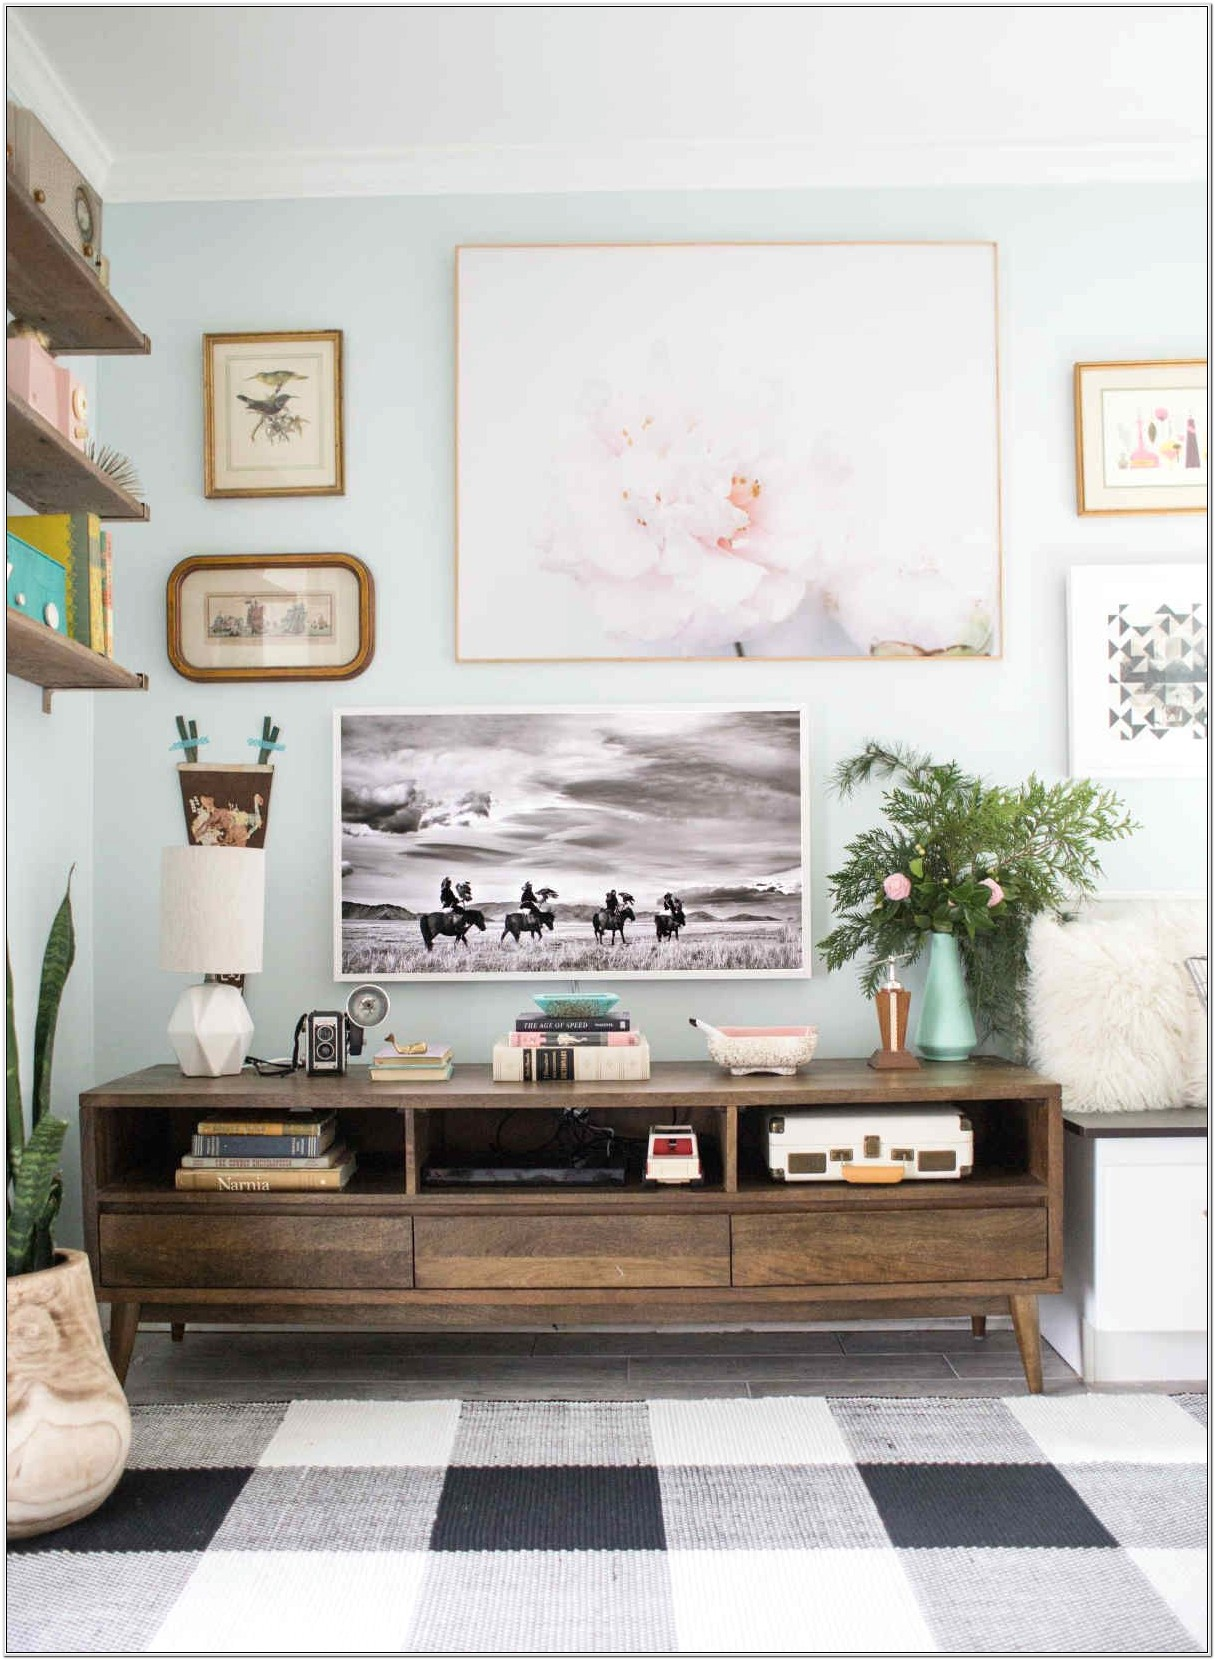 Modern Living Room Decoration With Photo Frames